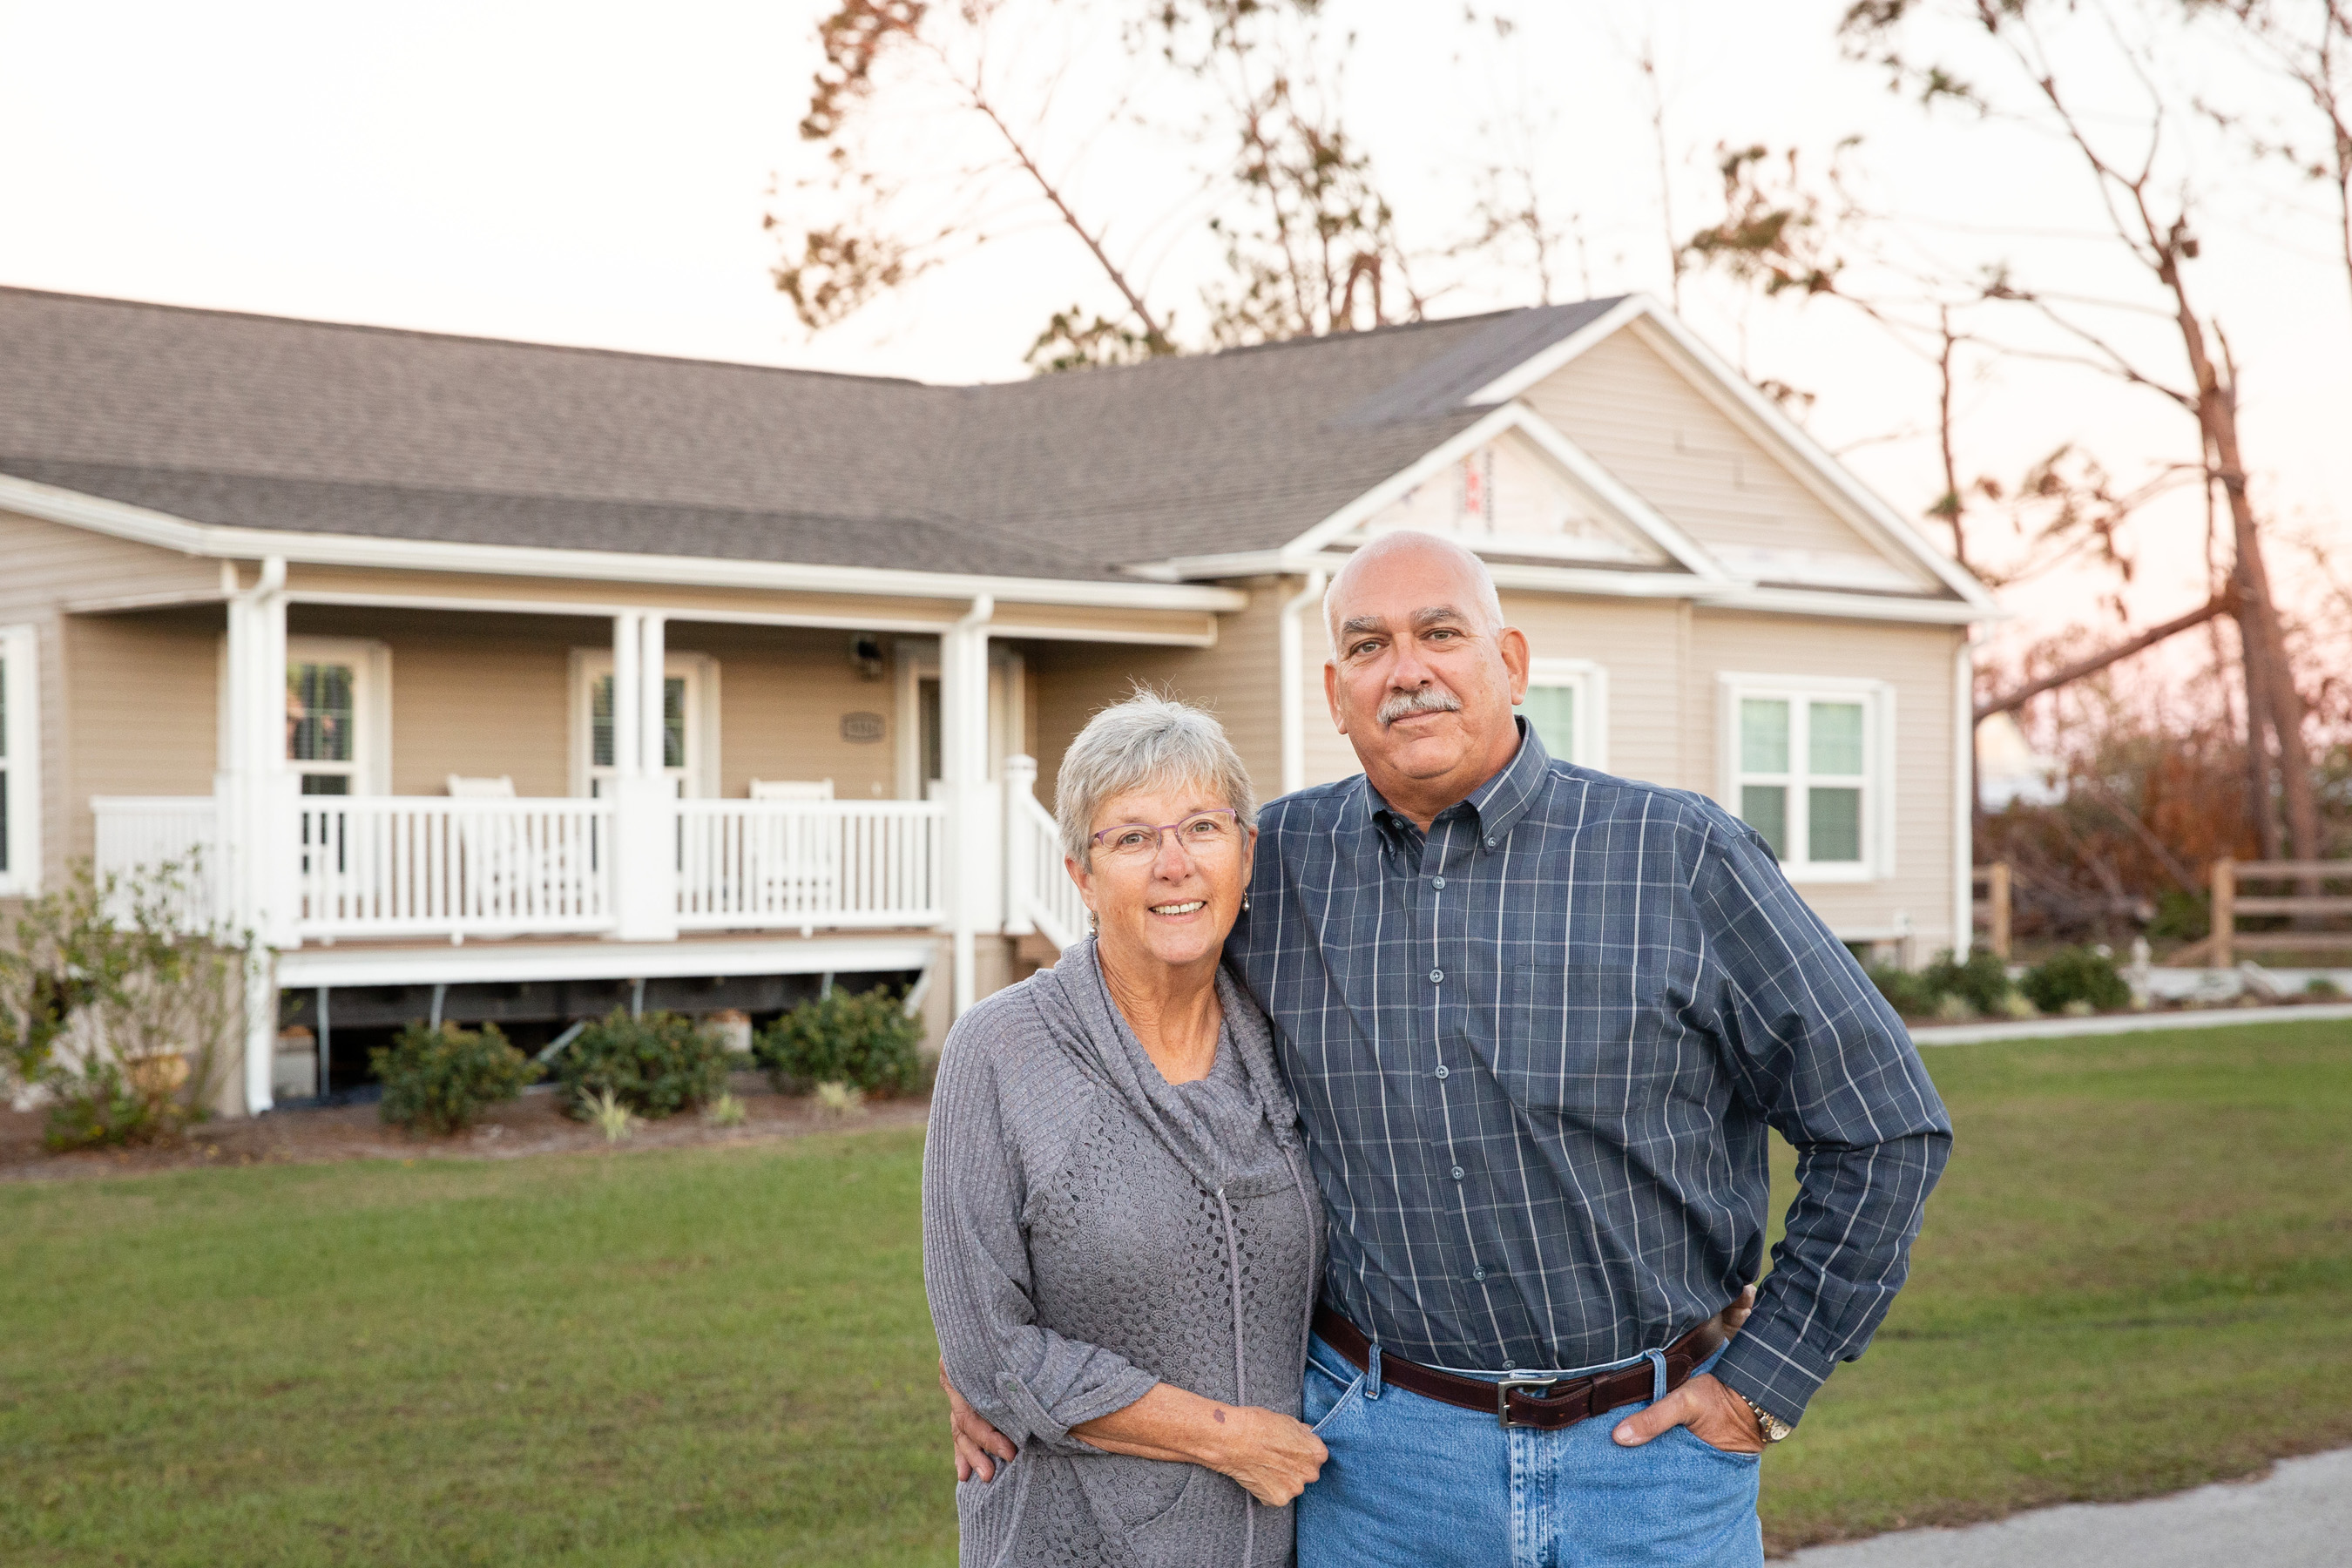 Terry and Darla chose to purchase a modular home after touring a home building facility and witnessing the quality of materials and offsite construction process.